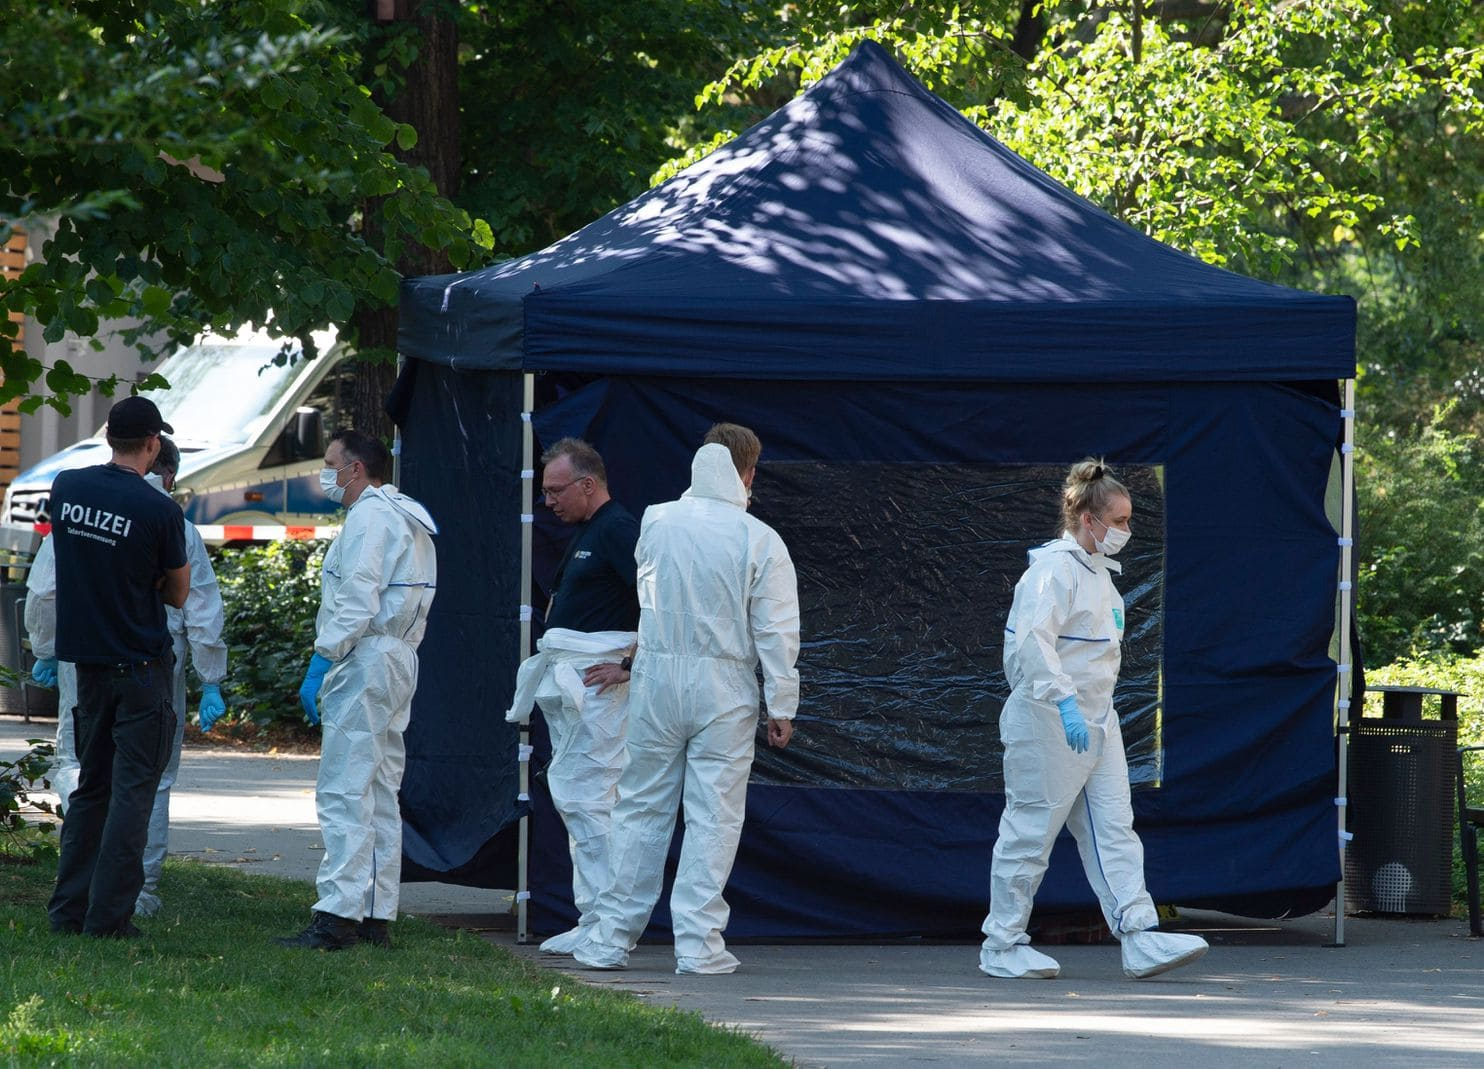 Police and forensics officials at a crime scene in Berlin on Aug. 23. Zelimkhan Khangoshvili of Georgia was fatally shot, and German media outlets suspect Russia was involved in the assassination-style killing.